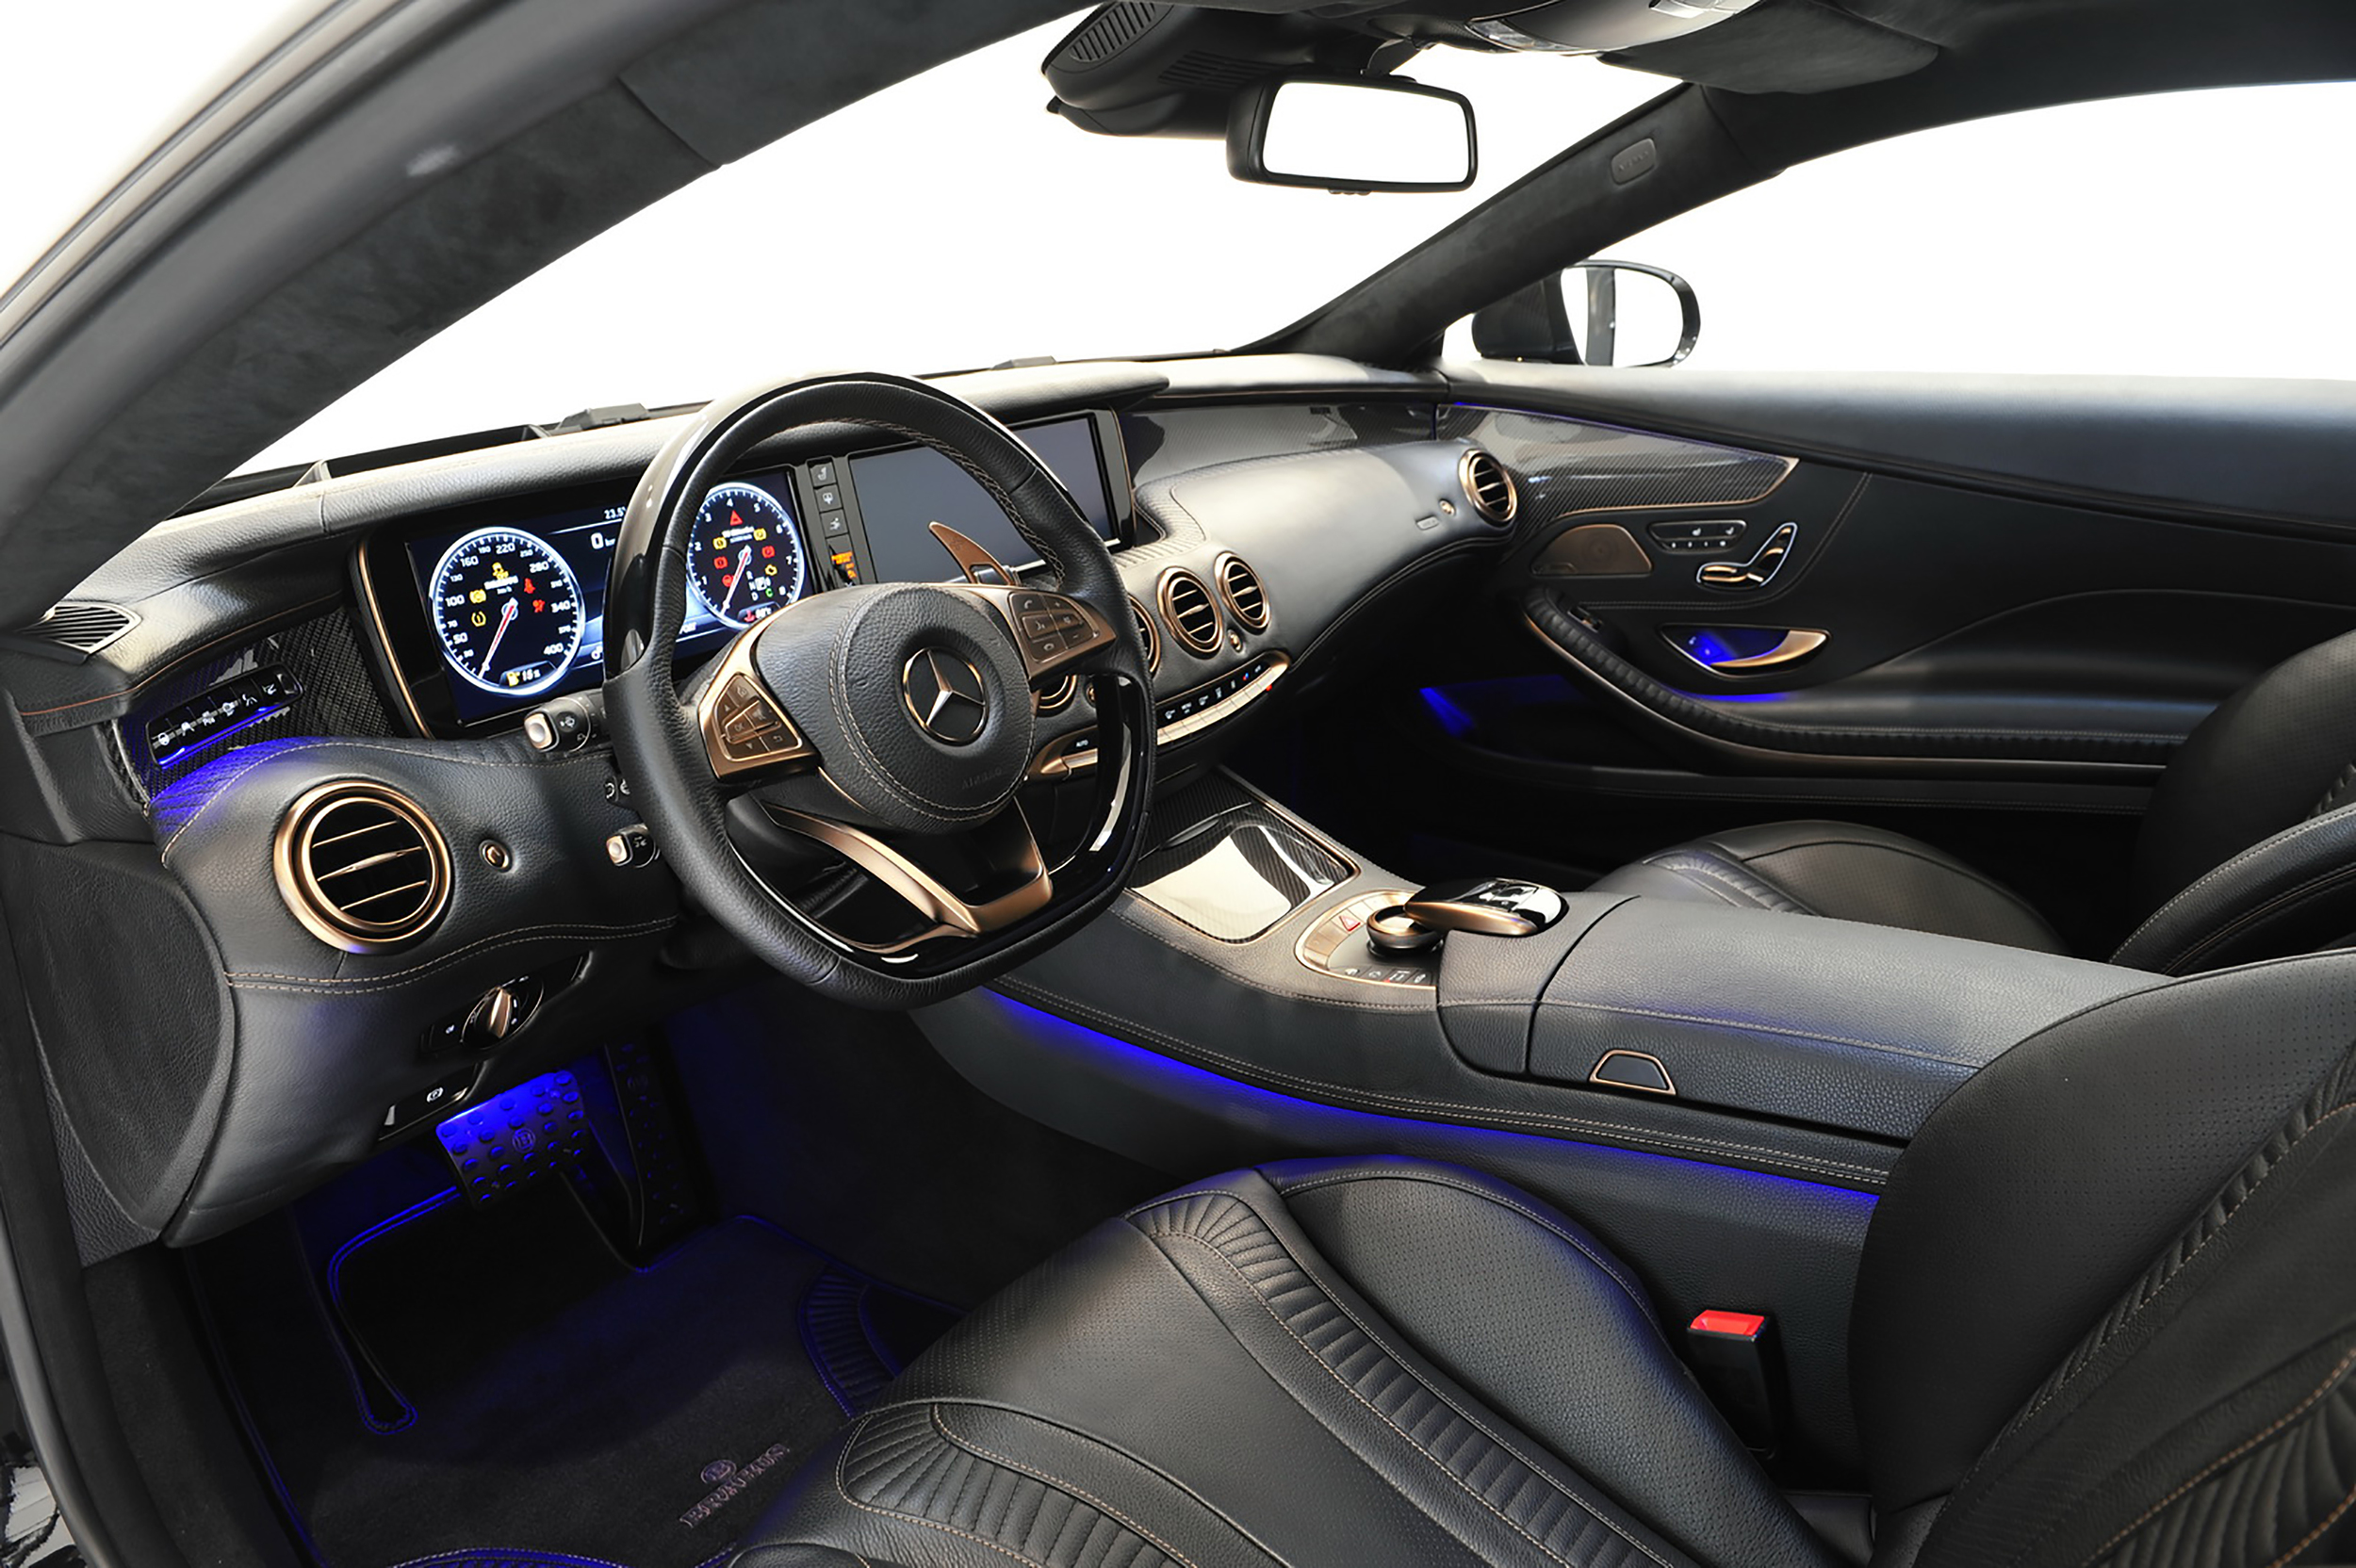 ' ' from the web at 'http://www.blogcdn.com/slideshows/images/slides/335/953/4/S3359534/slug/l/brabus-s-class-coupe-30-1.jpg'